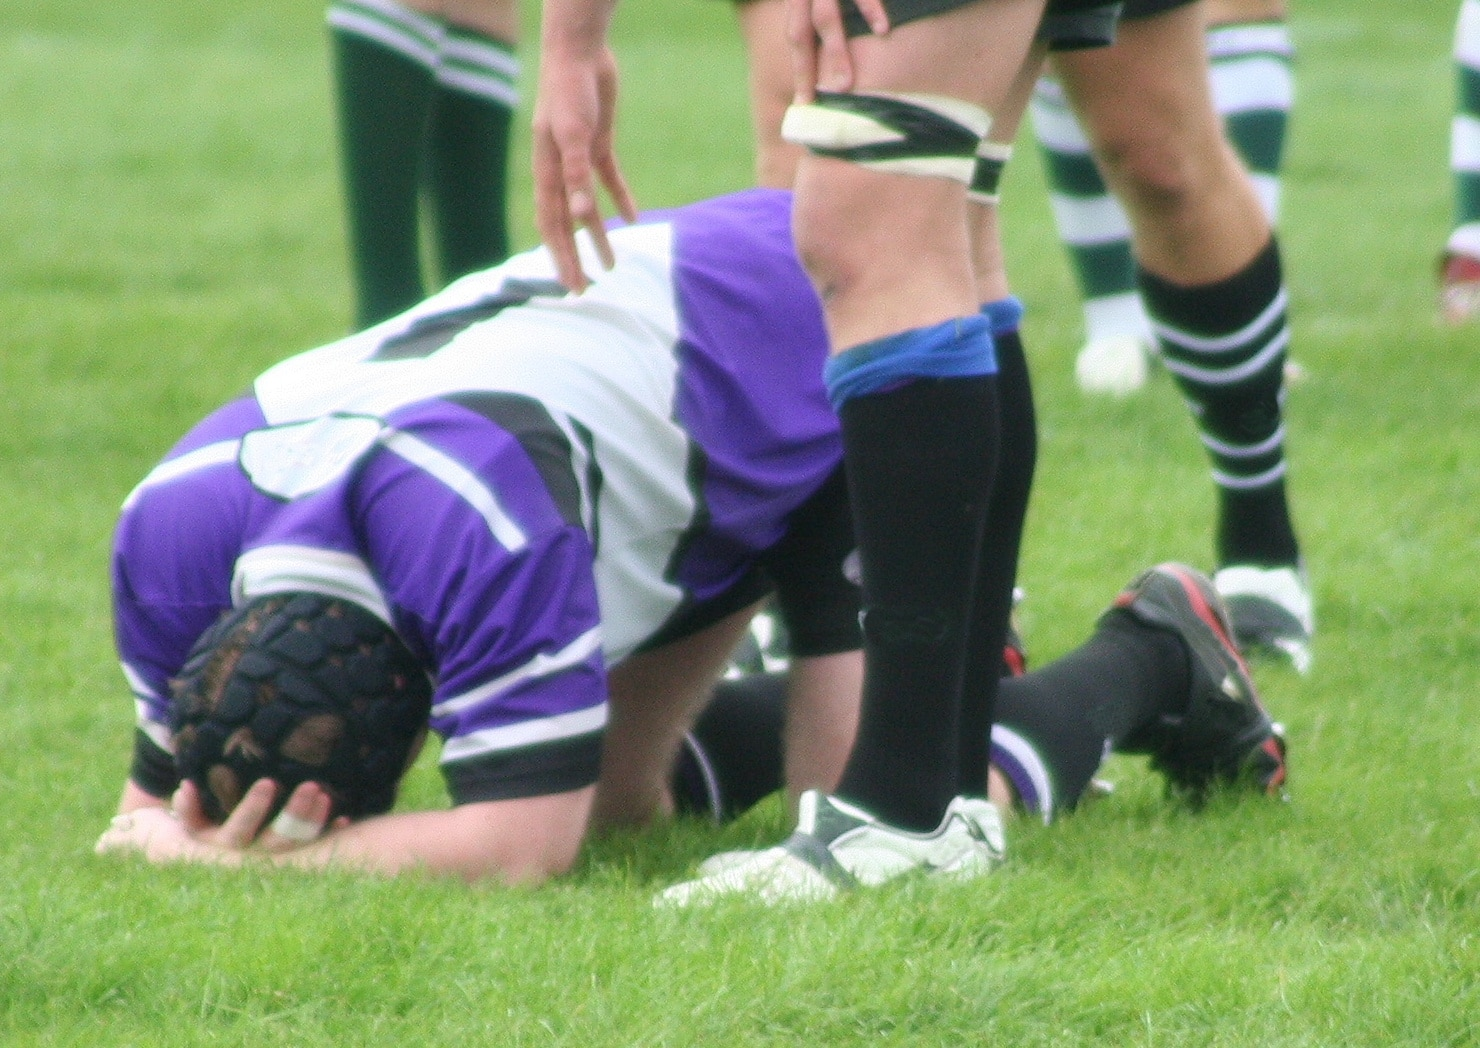 Head Injuries – What to Do